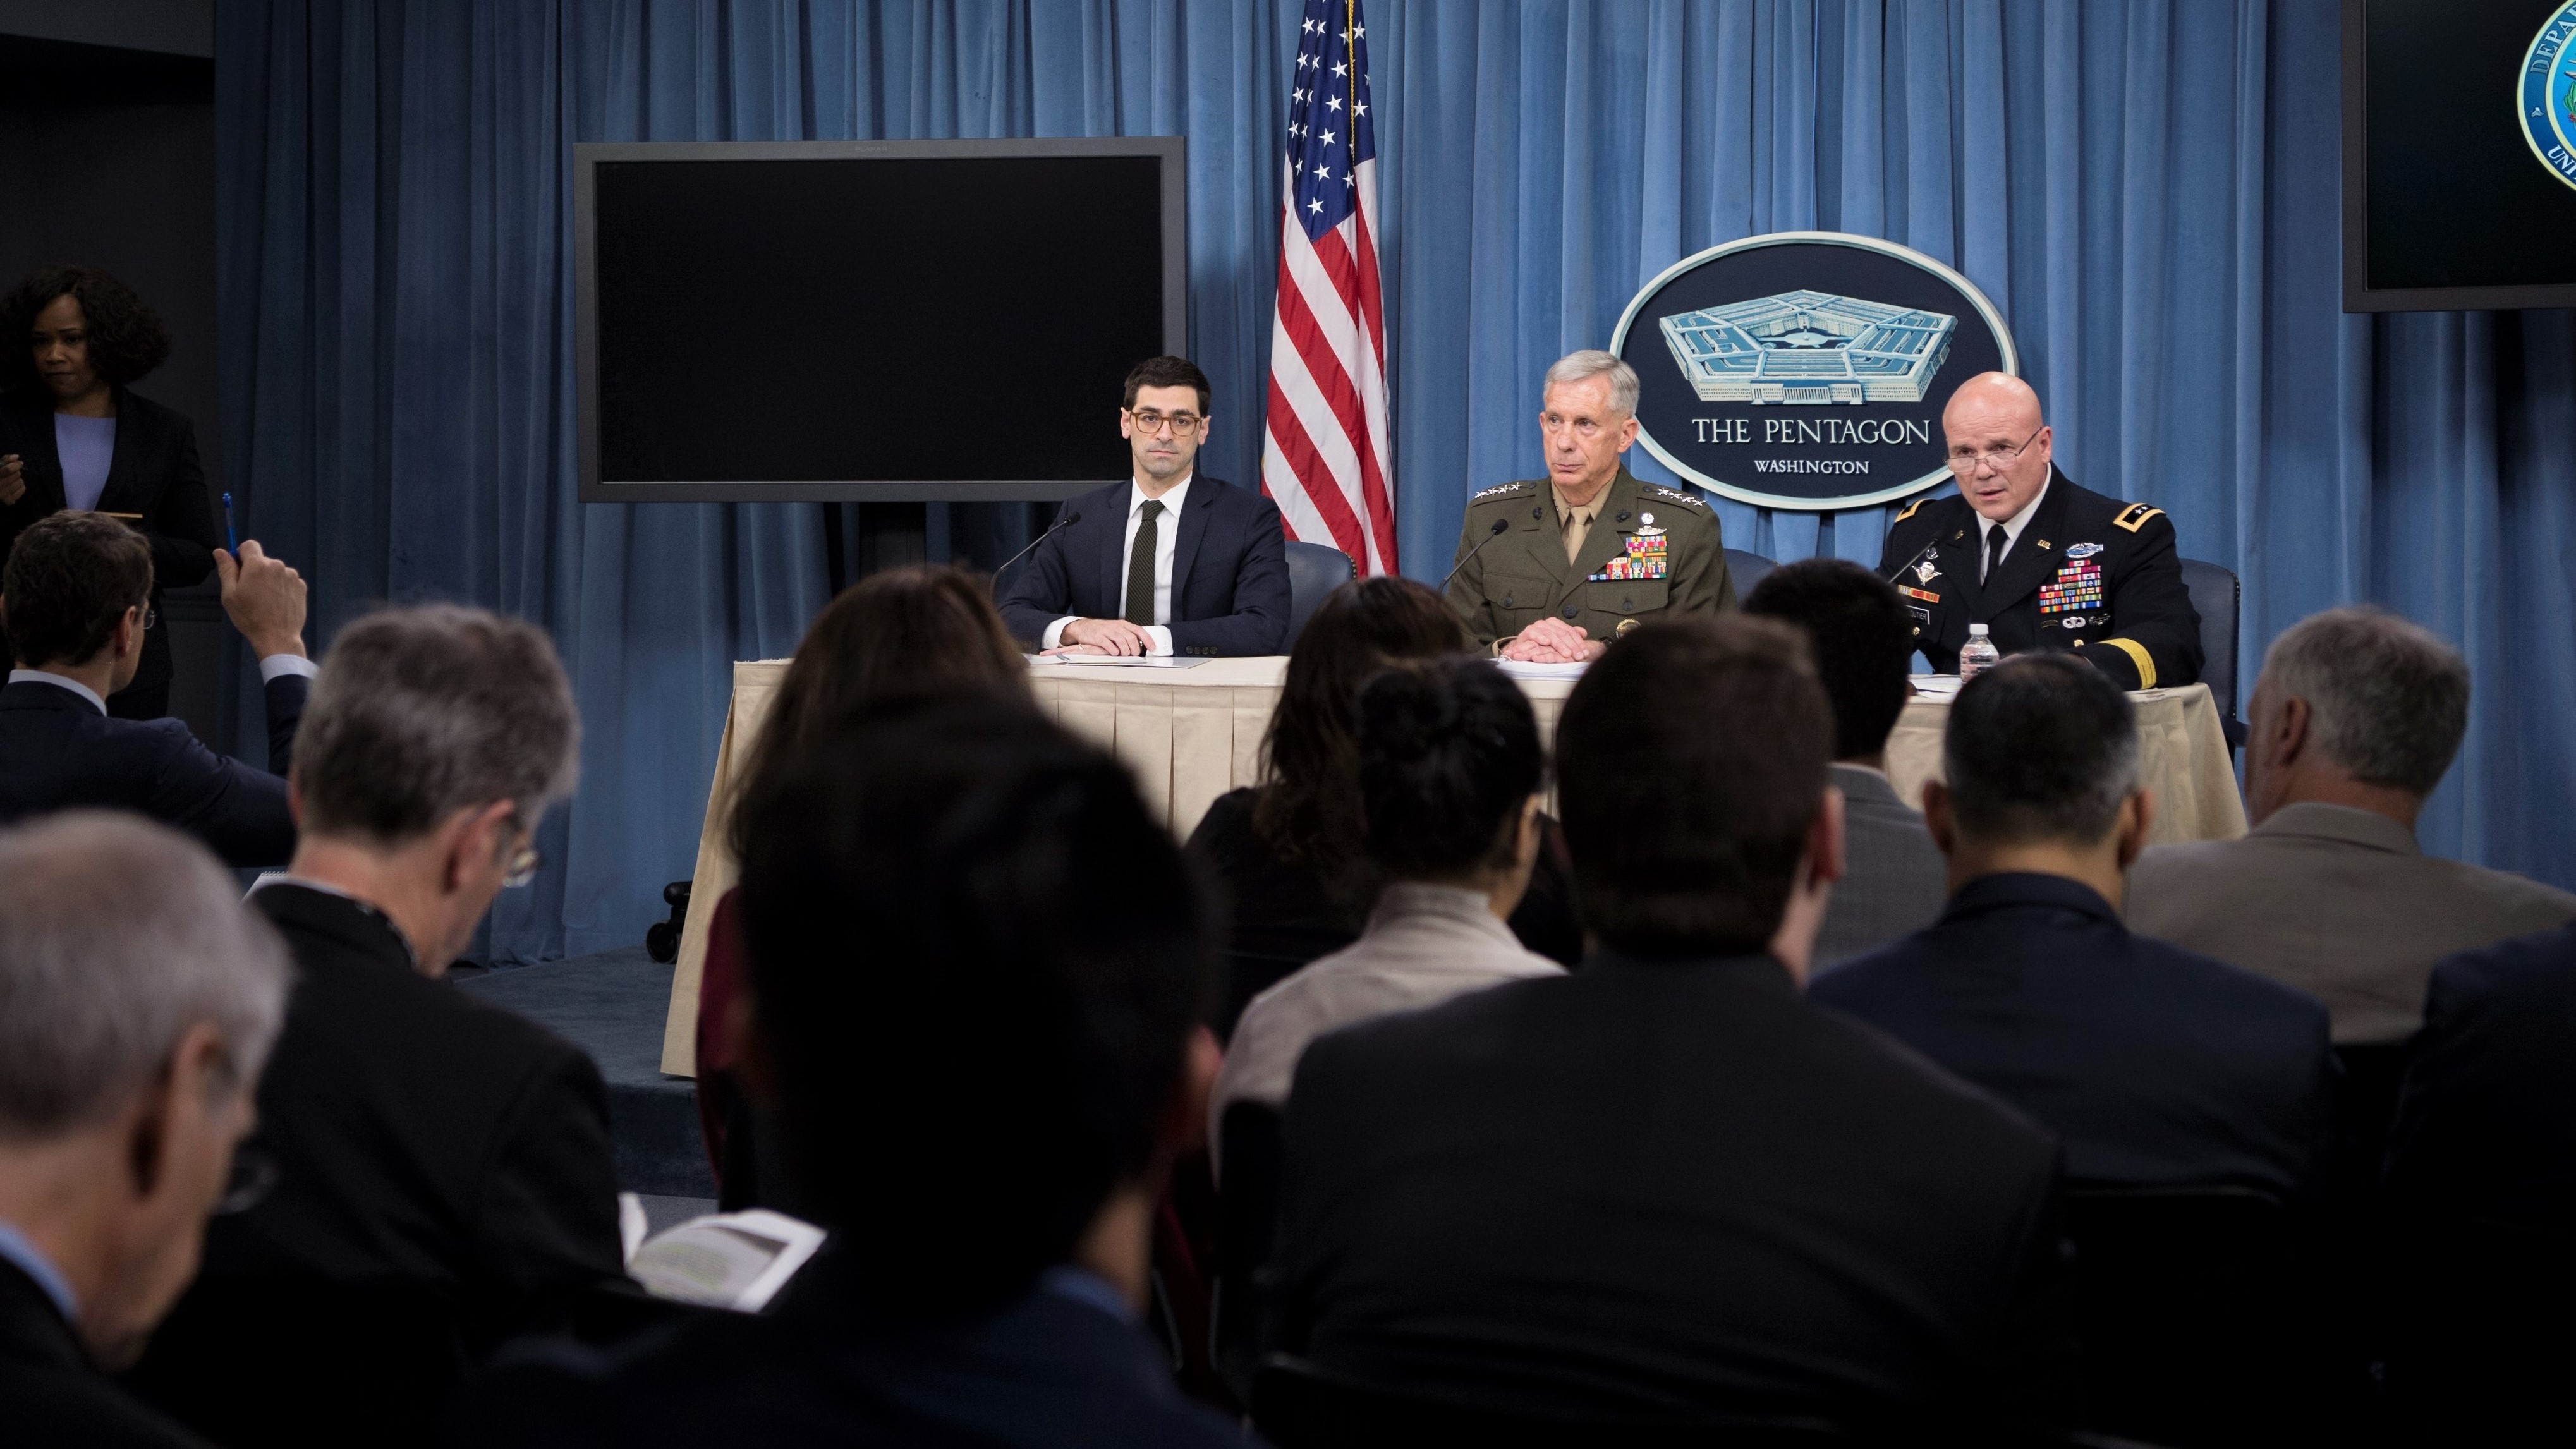 Assistant Secretary of Defense for International Security Affairs Robert S. Karen, Marine Gen. Thomas D. Waldhauser, commander, U.S. Africa Command, and Army Maj. Gen. Roger L. Cloutier Jr., chief of staff, U.S. Africa Command, and lead investigating officer, brief the media on the results of the investigation of the Oct. 4, 2017 ambush in Niger at Pentagon in Washington, D.C., May 10, 2018. (DoD photo by Navy Mass Communication Specialist 1st Class Kathryn E. Holm)